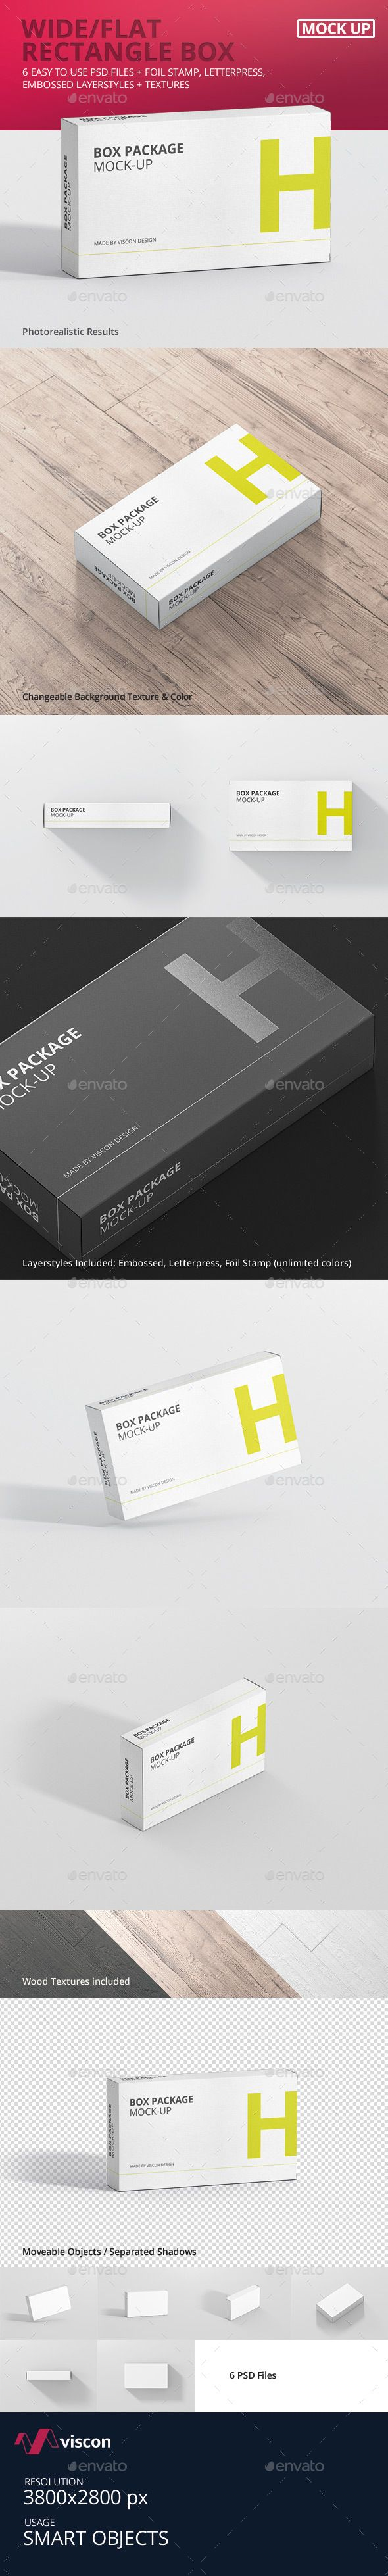 Download Package Box Mock Up Wide Flat Rectangle Packaging Mockup Packaging Design Box Packaging Templates